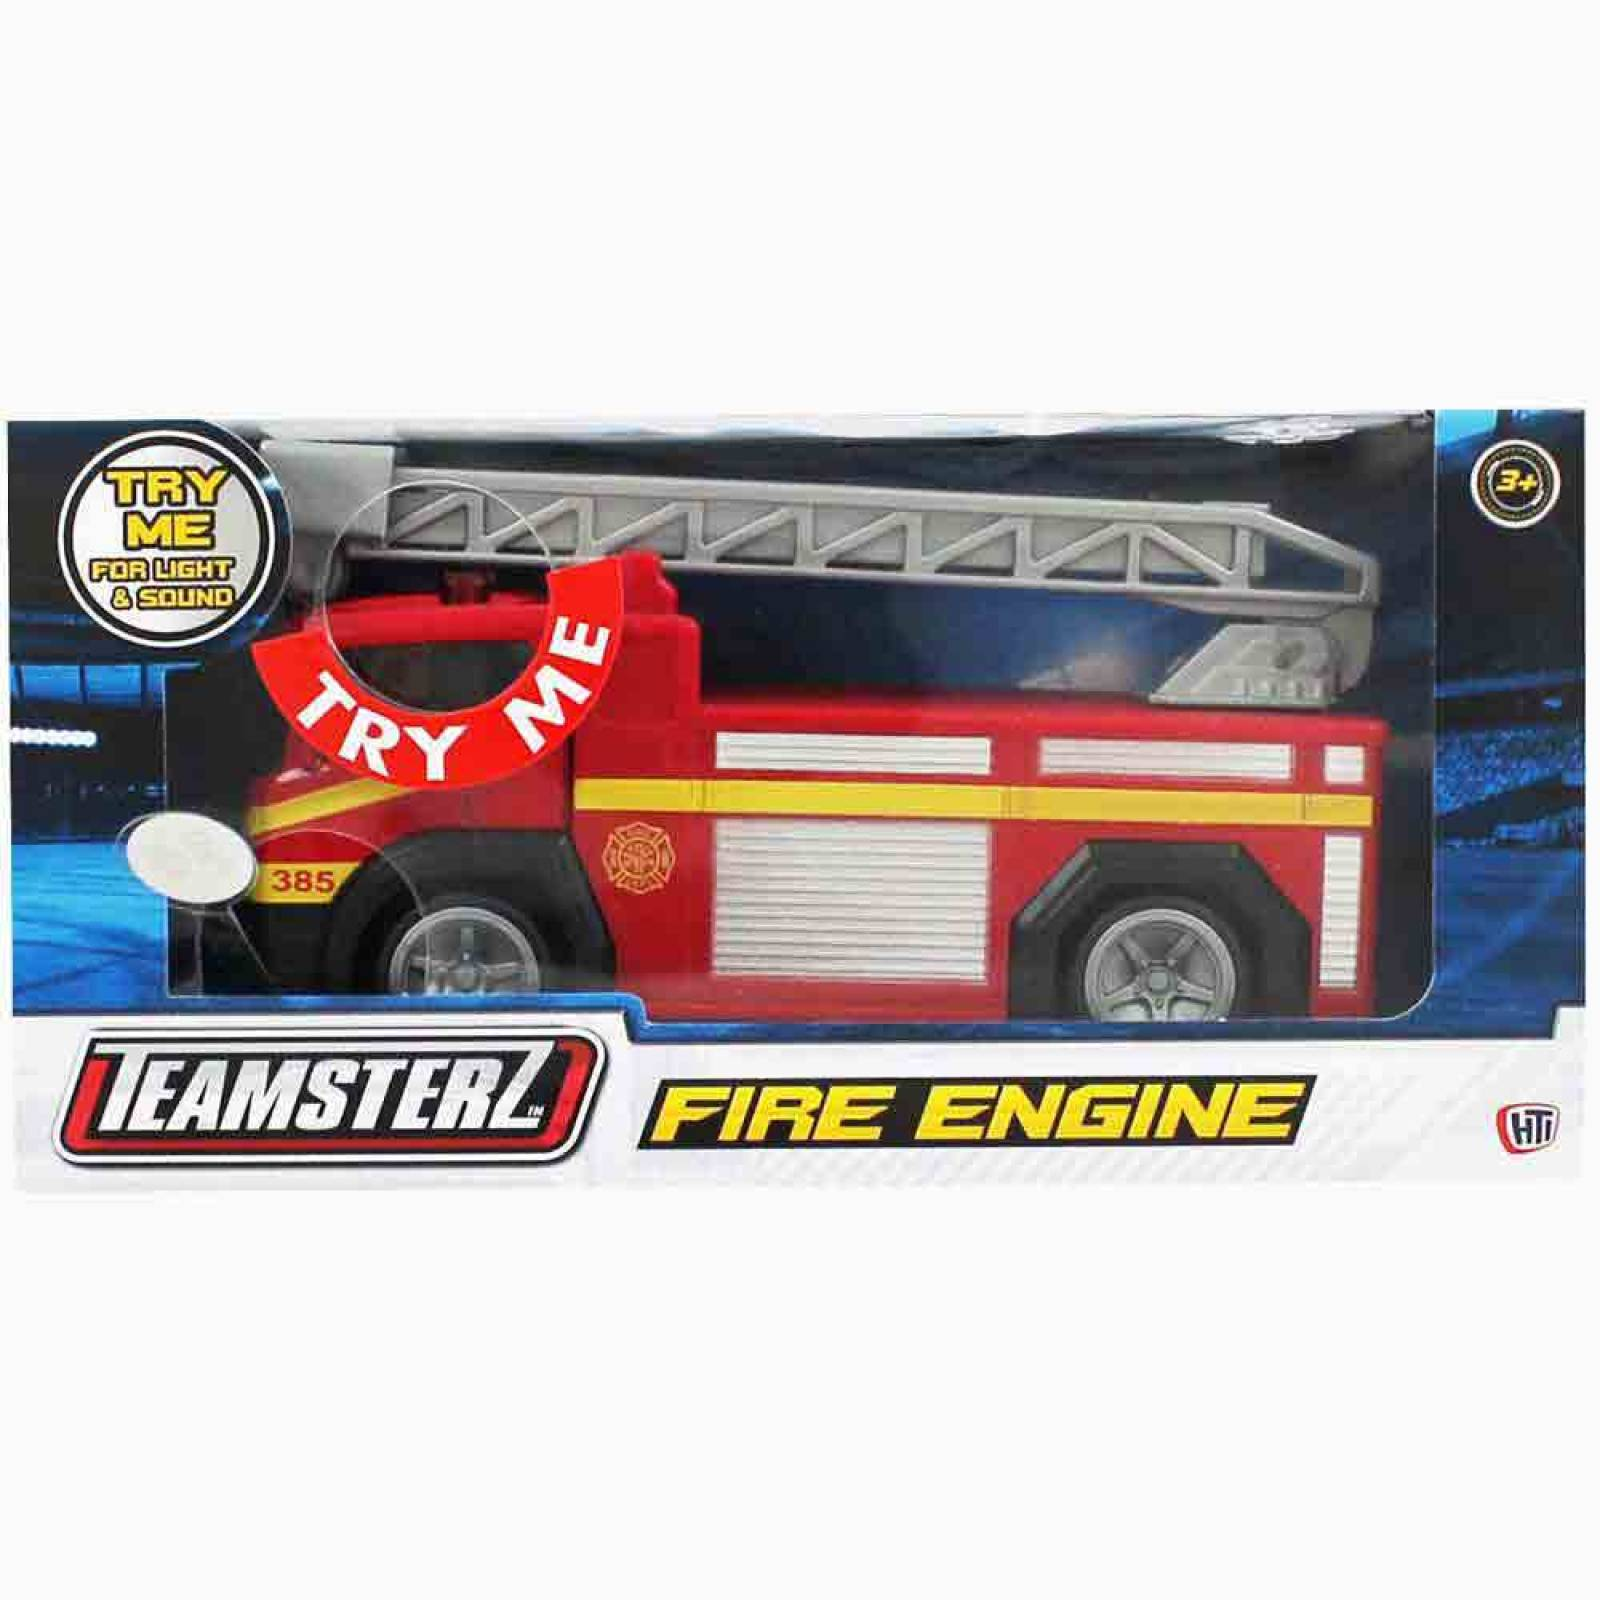 Fire Engine With Light & Sound 1:48 Toy Car Assorted thumbnails